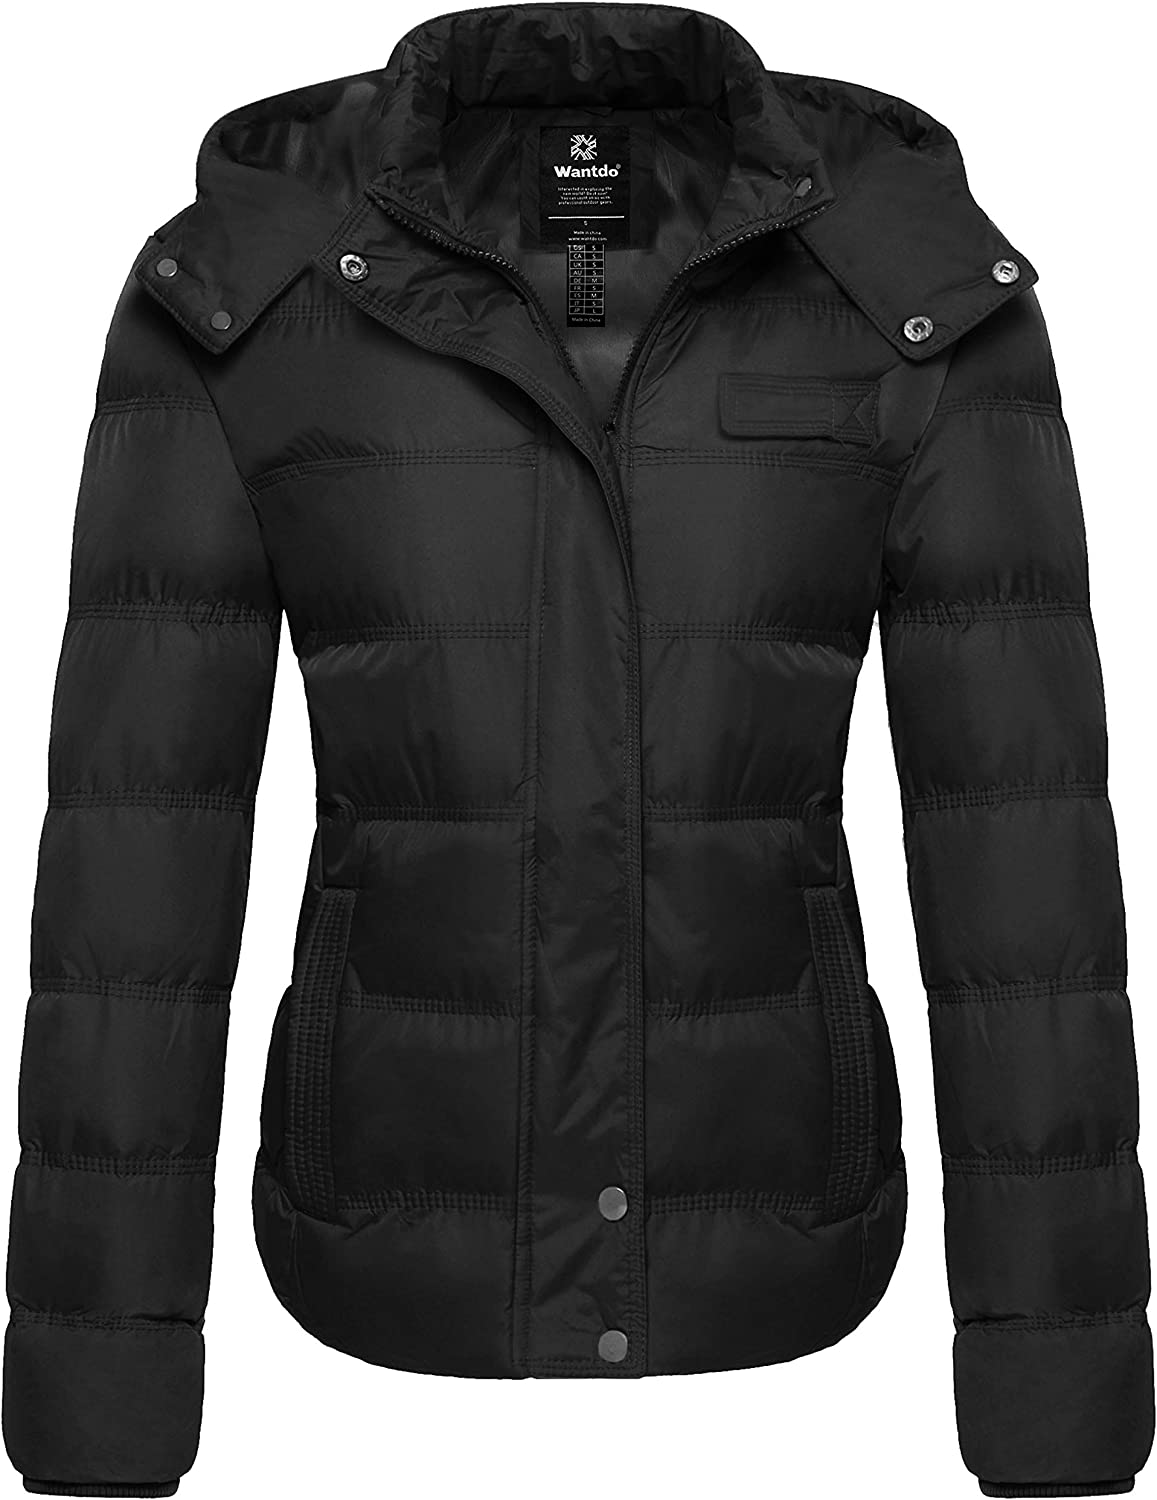 Wantdo Women's Hooded Warm Winter Coat Quilted Thicken Puffer Jacket with Removable Hood: Clothing